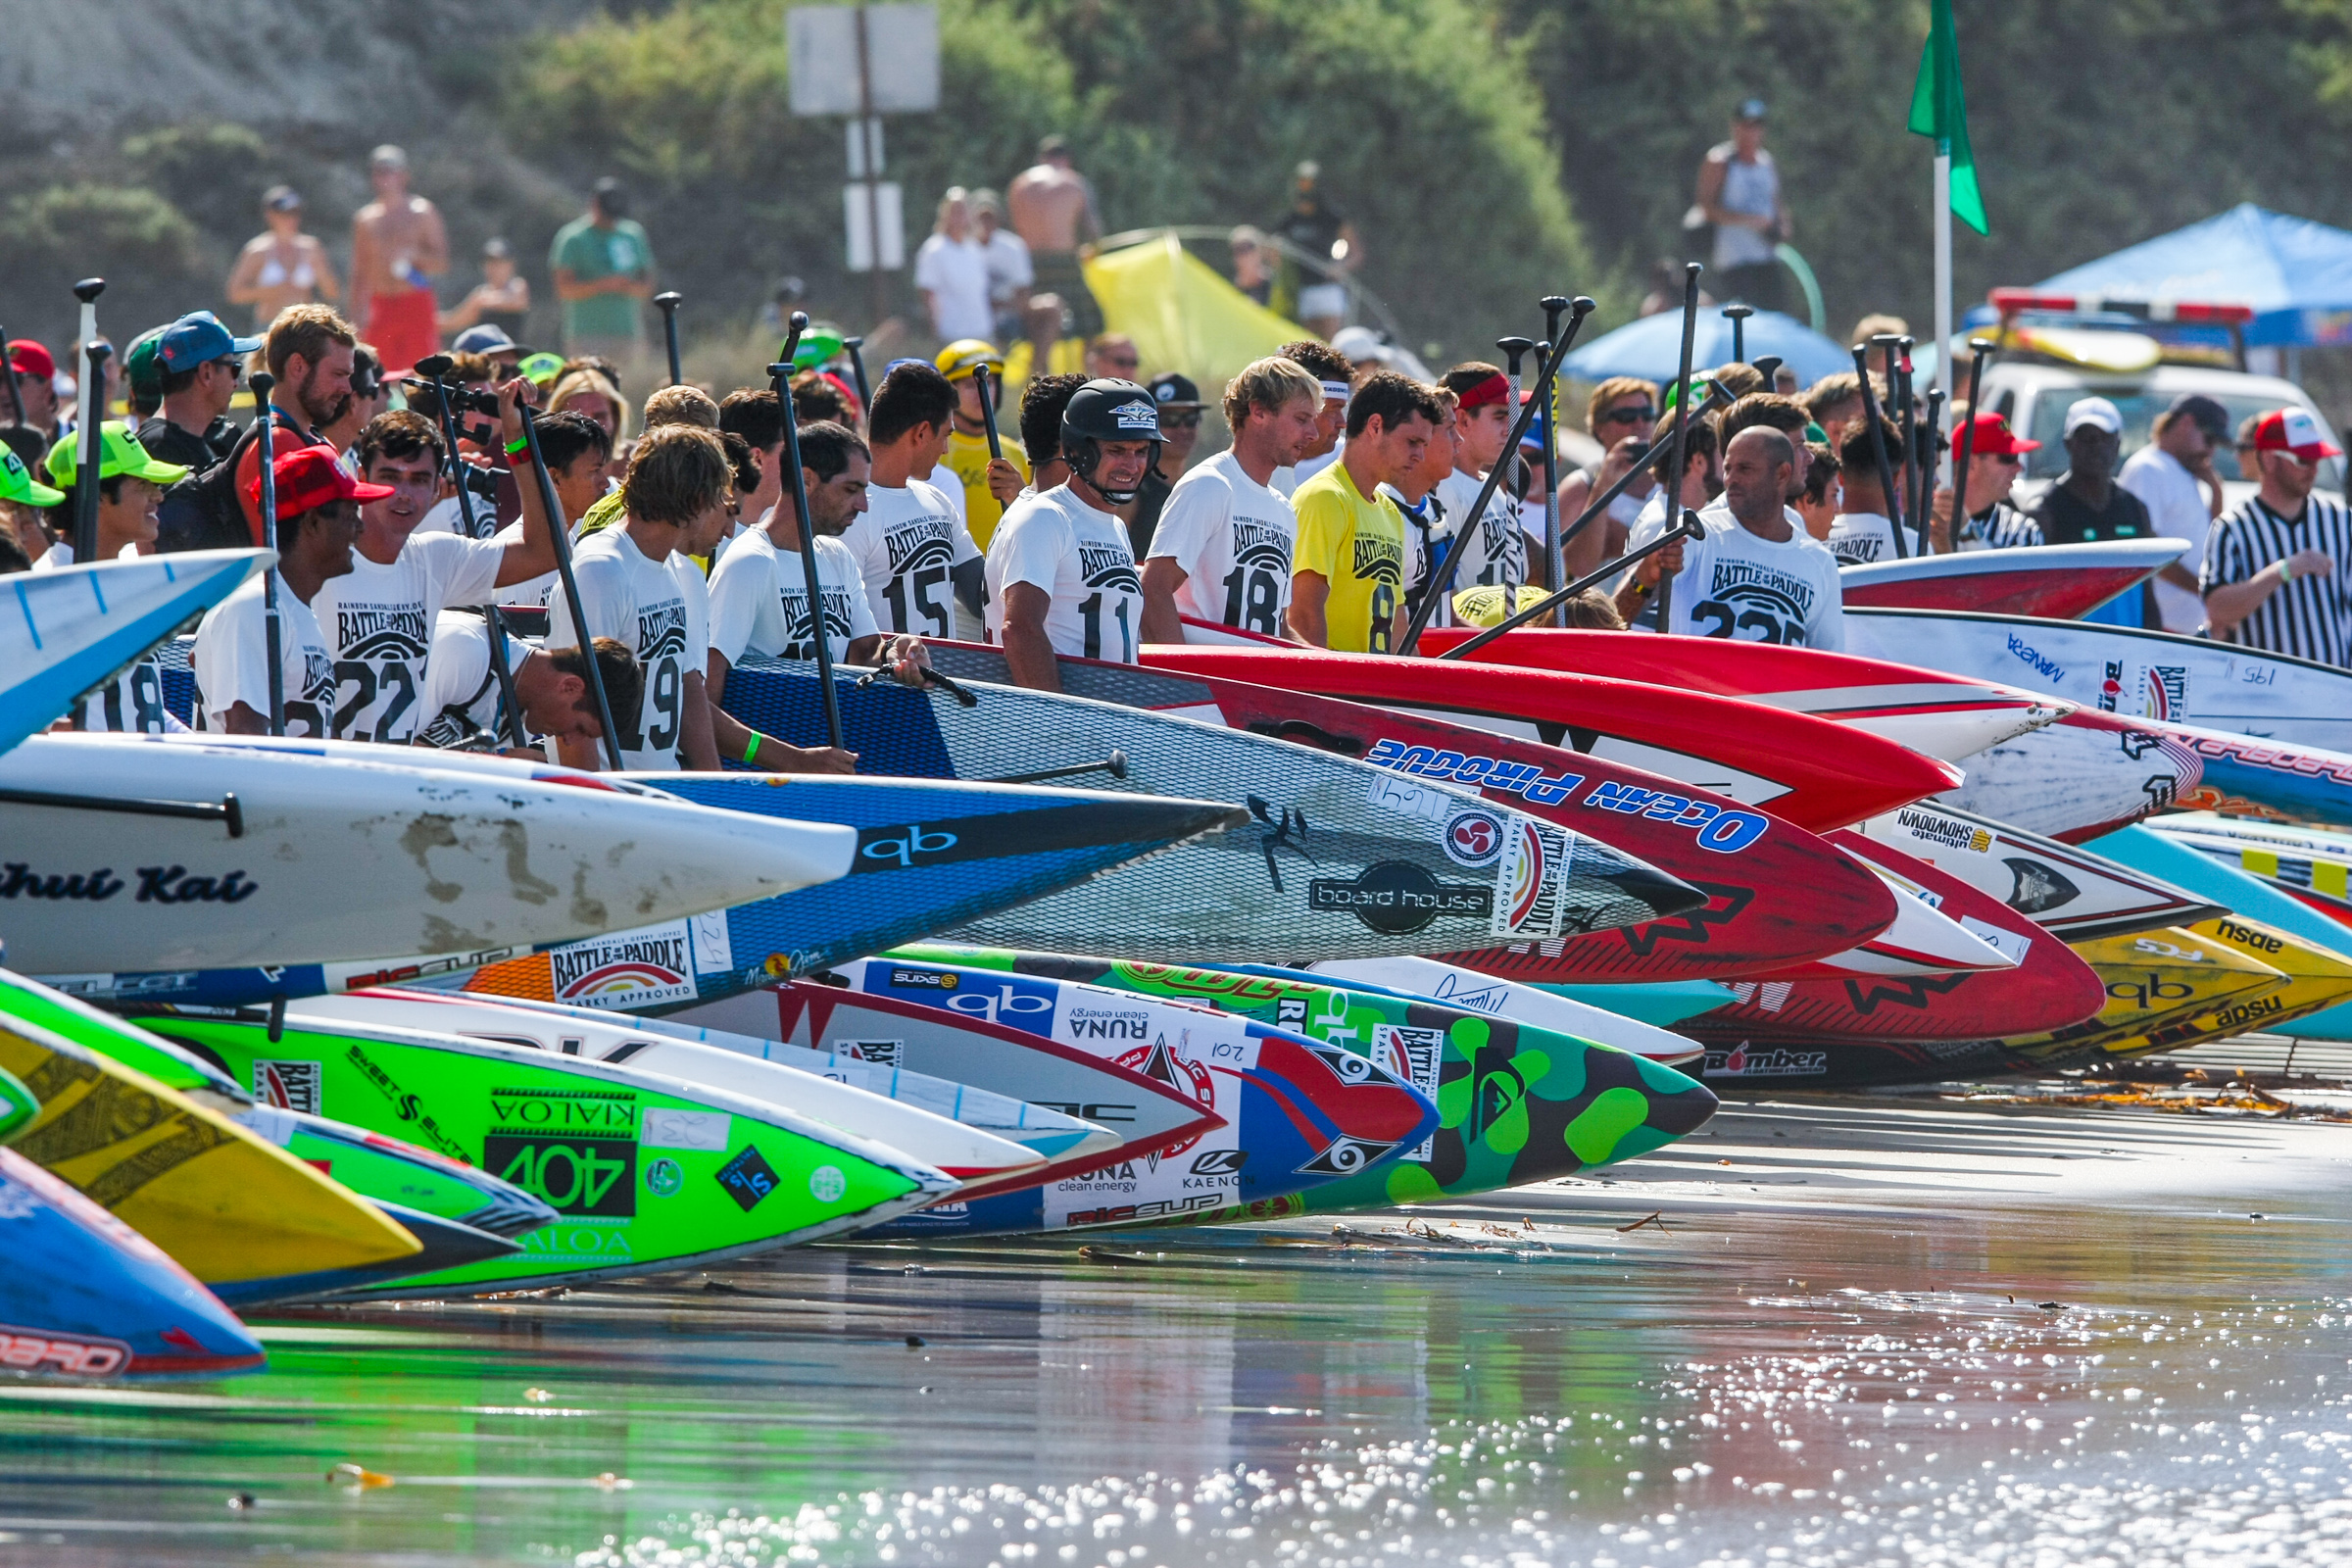 Contestants line up on Salt Creek Beach prior to the start of a race at the Battle of the Paddle. Photo: Tony Tribolet/www.xpsphoto.com